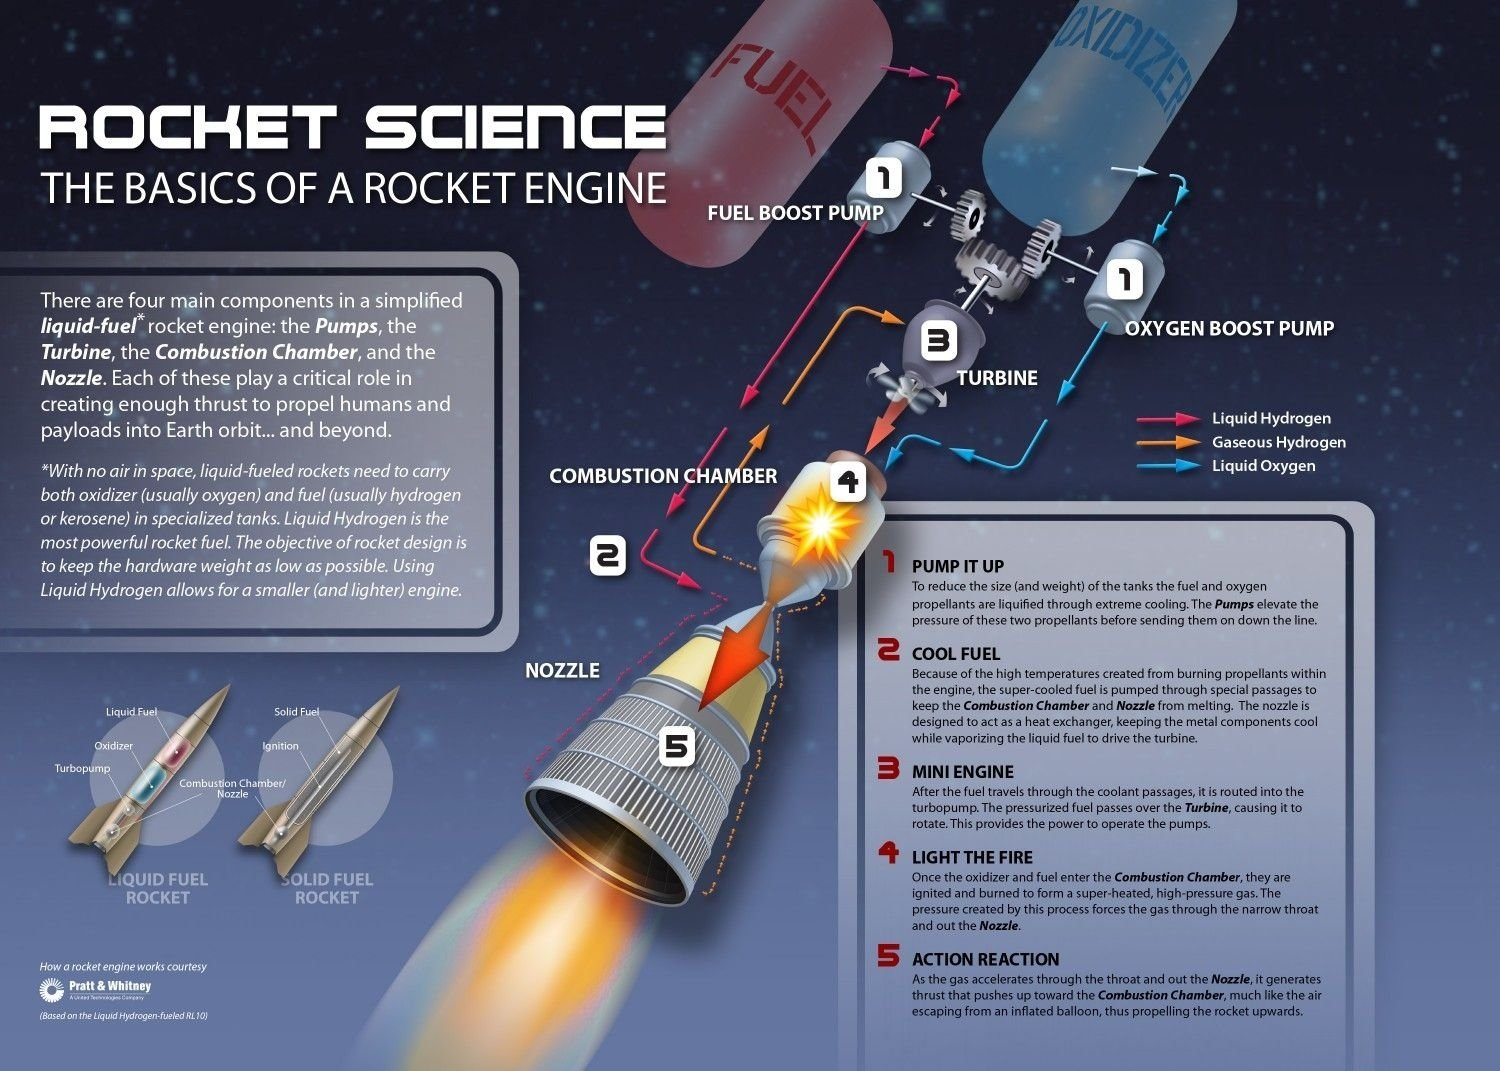 10 Fabulous A Rocket To The Moon Your Best Idea rocket science infographic this illustrates the basics of how a 2020